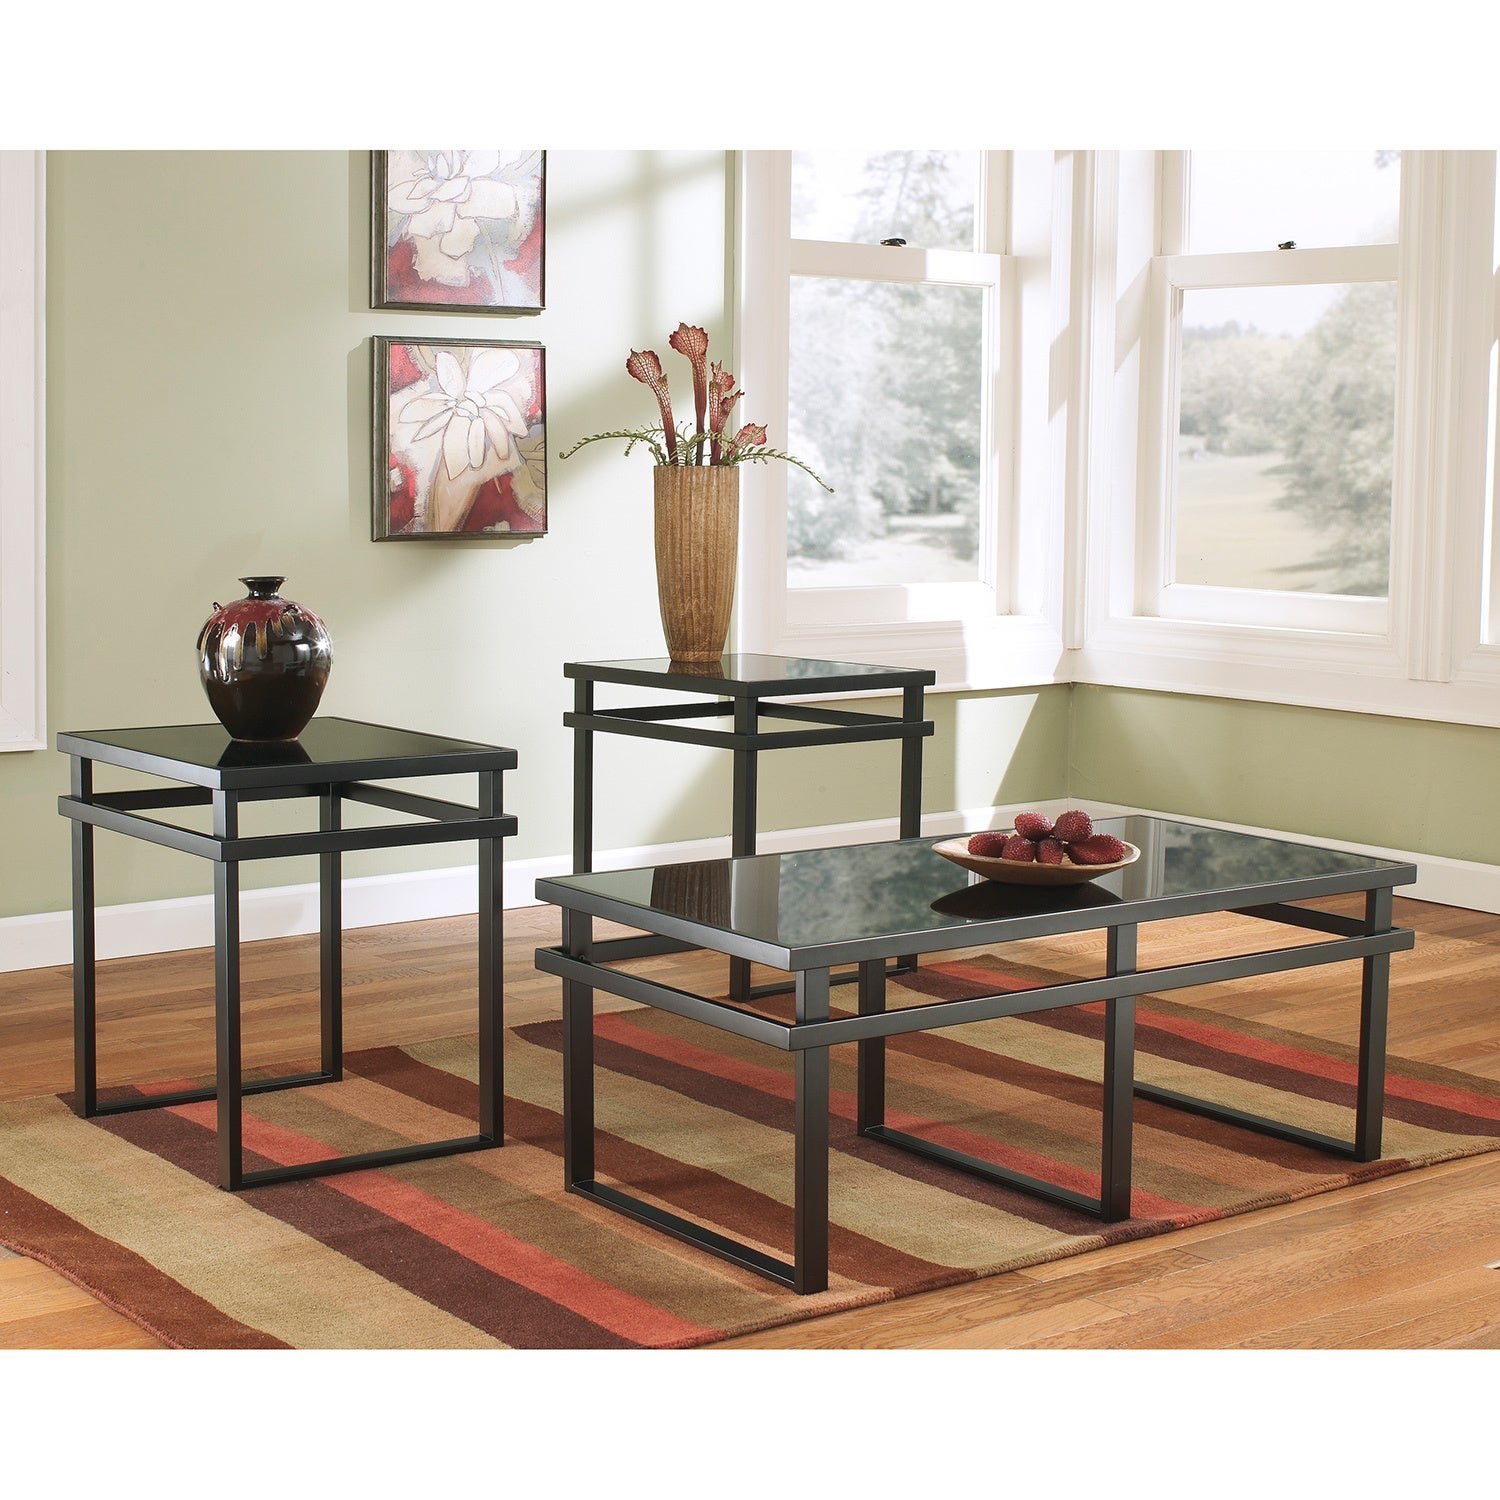 Signature Designs by Ashley Laney 3 piece Occasional Table Set